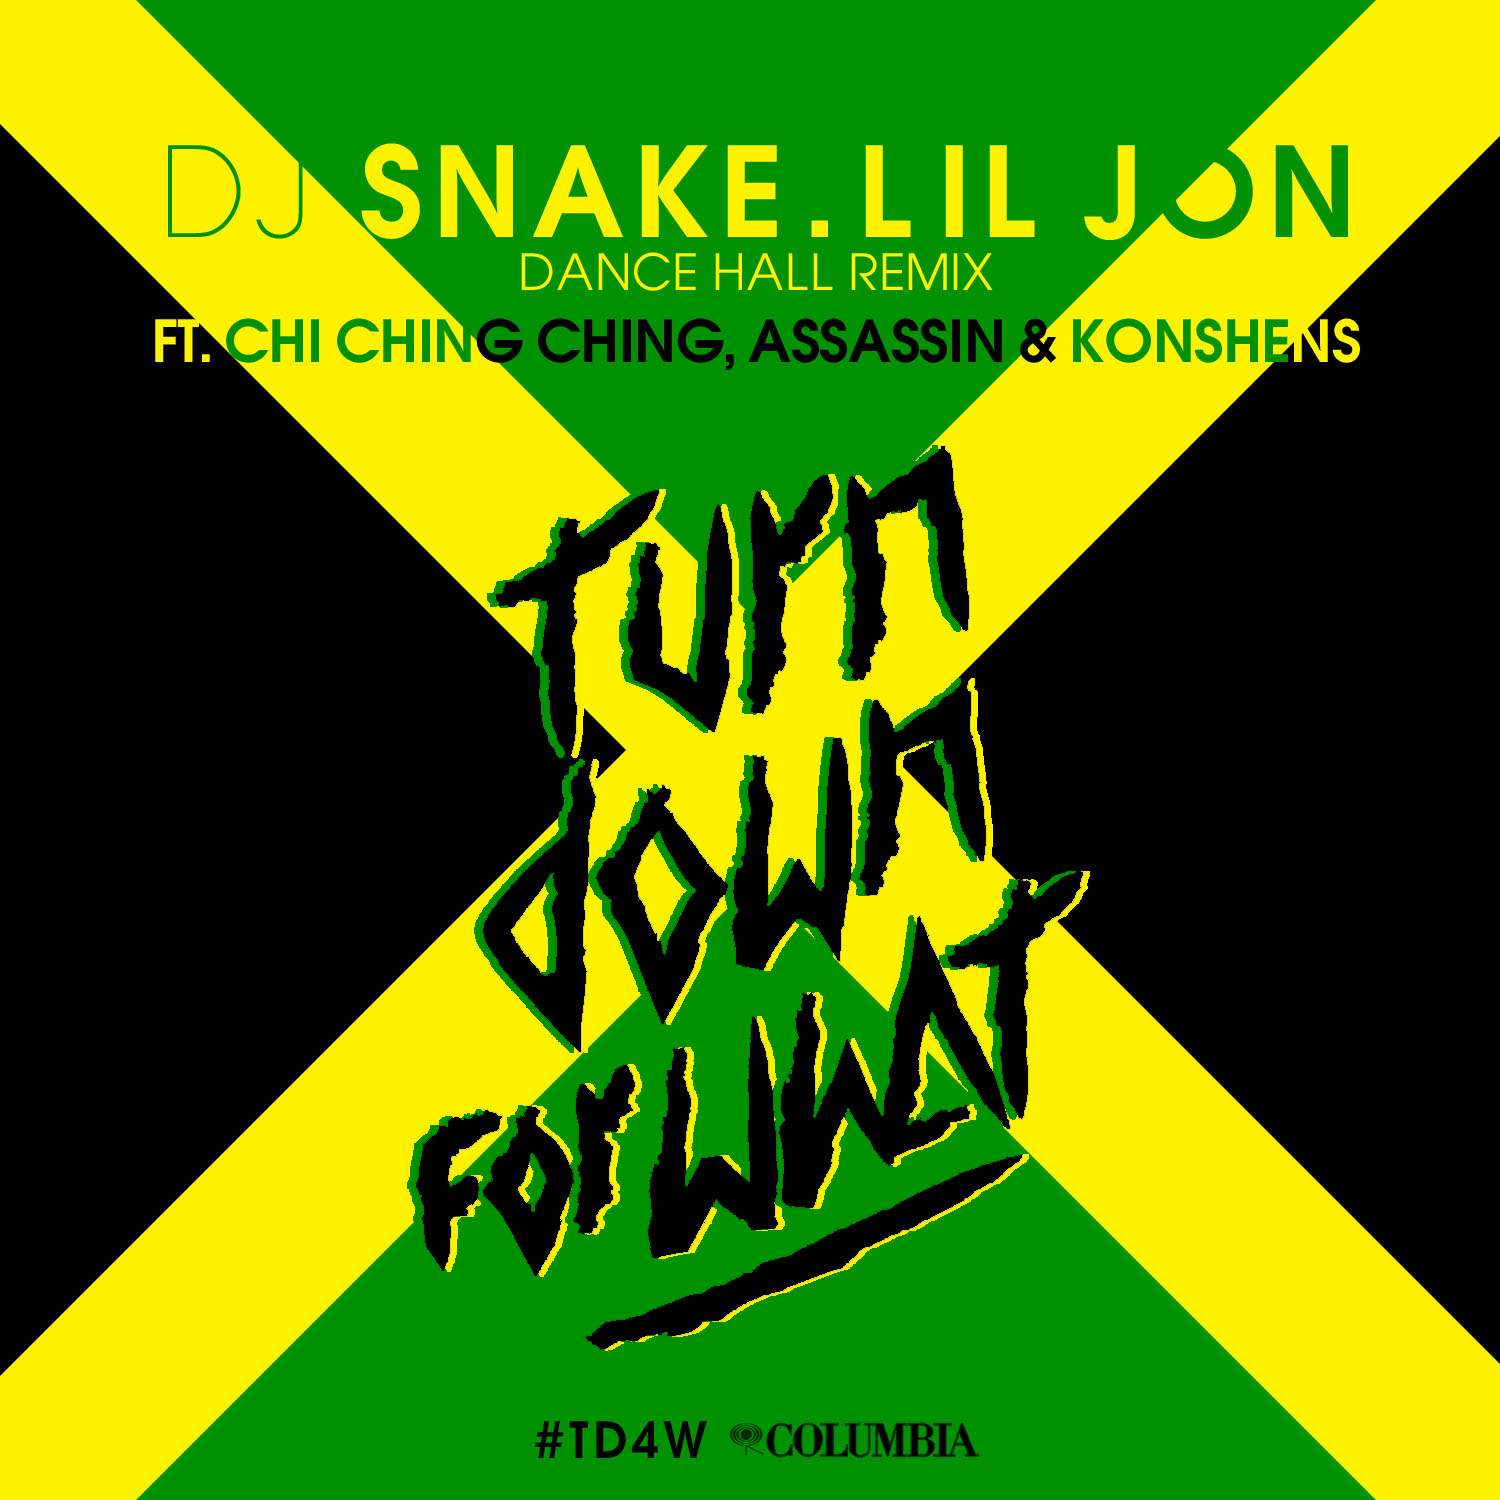 AUDIO: Lil Jon and DJ Snake's